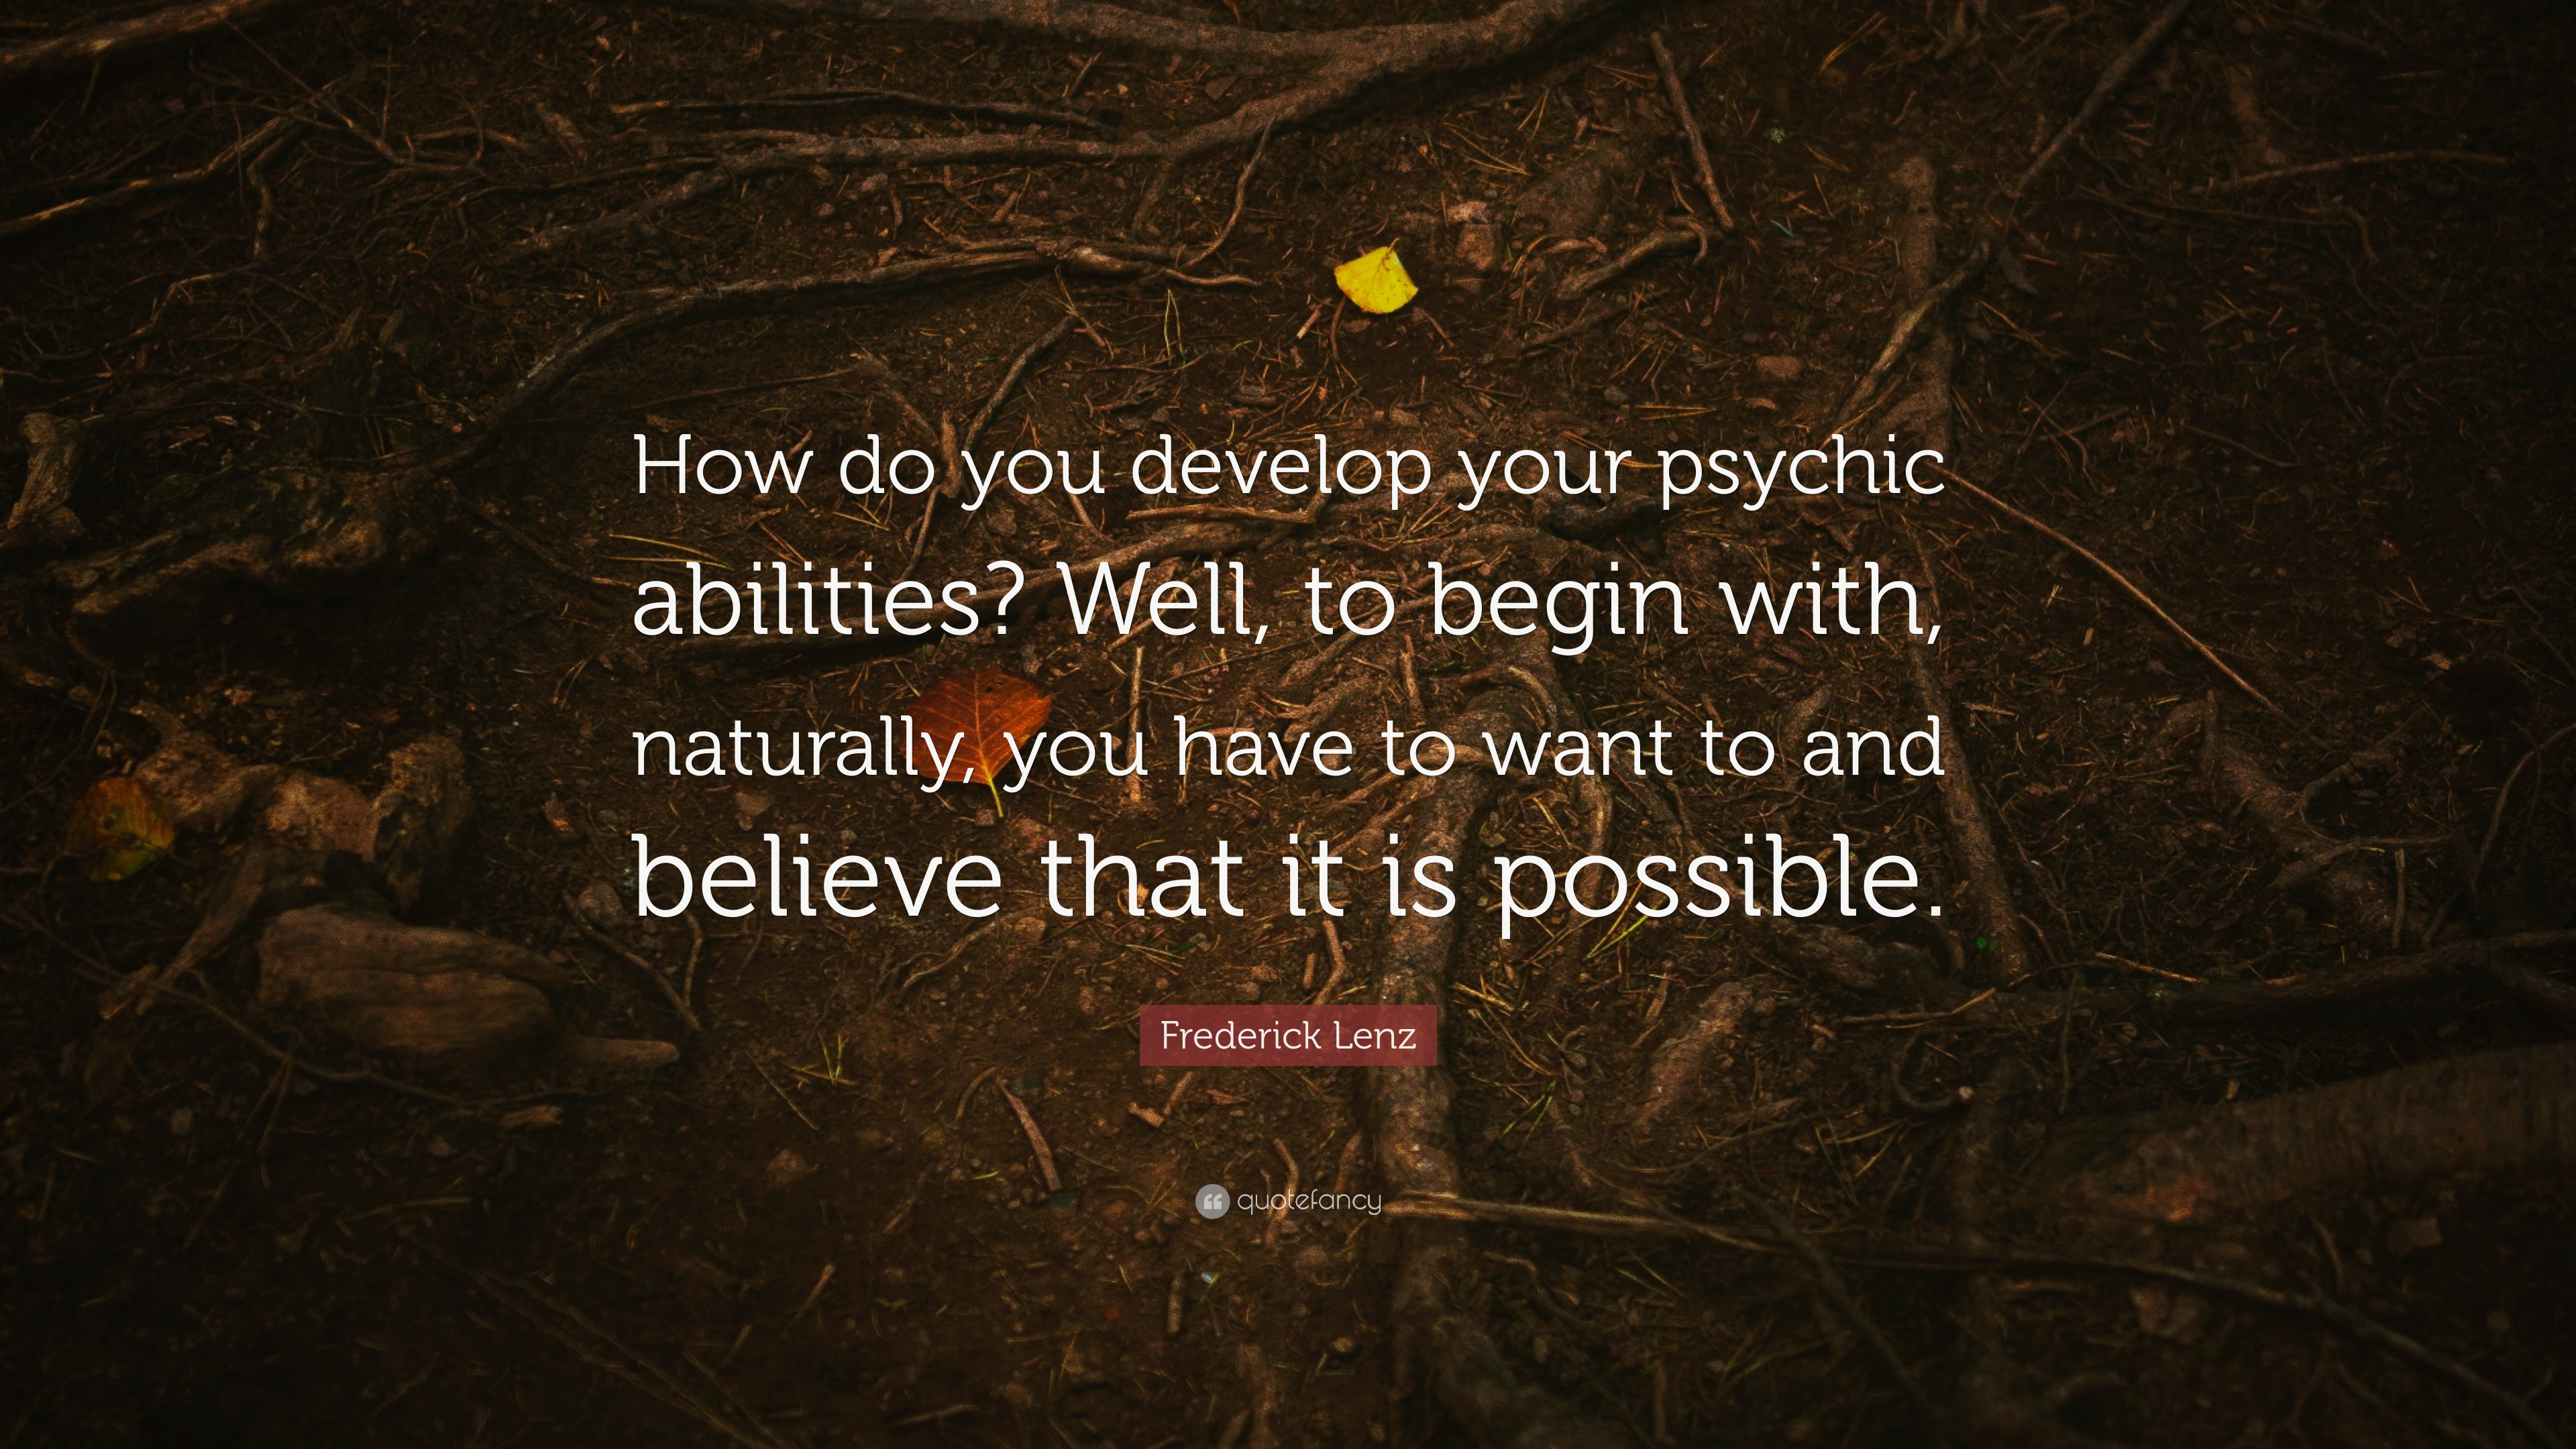 Frederick Lenz Quote How Do You Develop Your Psychic Abilities Well To Begin With Naturally You Have To Want To And Believe That It Is Po 7 Wallpapers Quotefancy